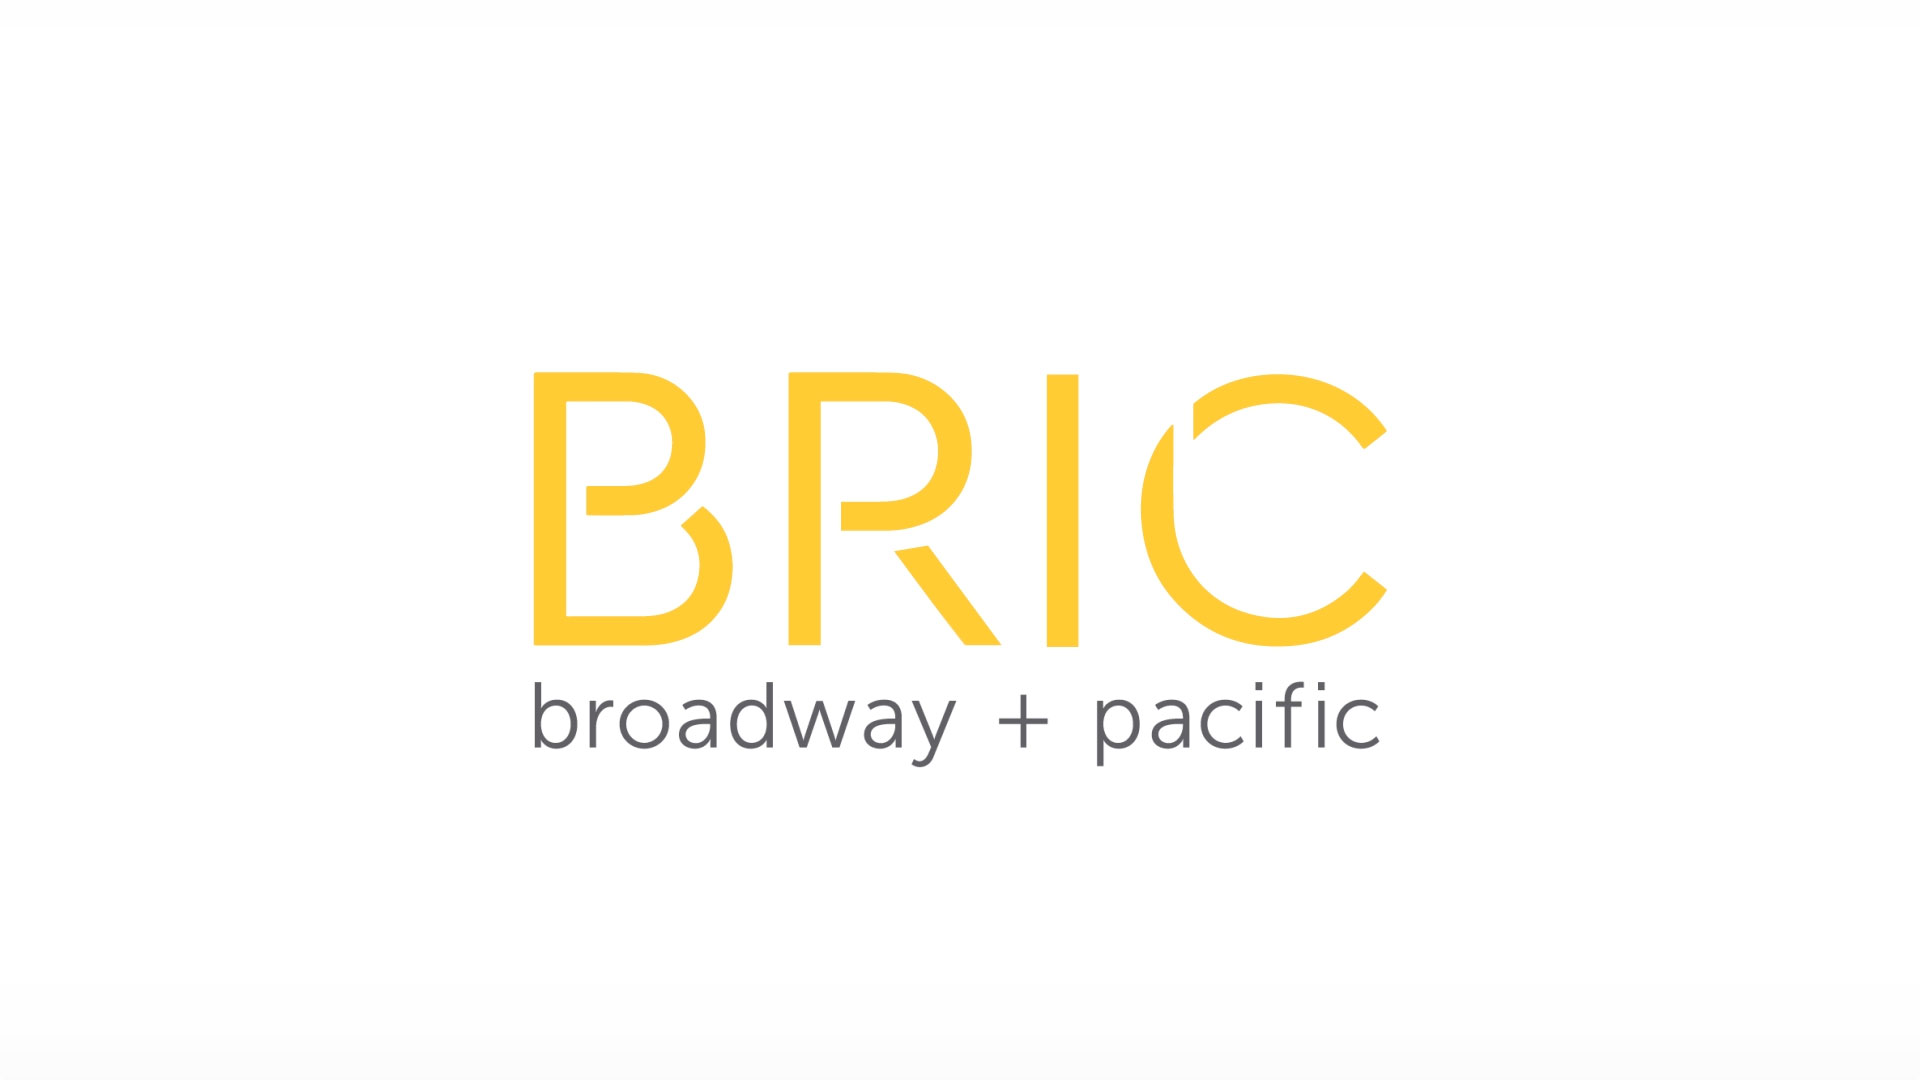 BRIC - broadway + pacific